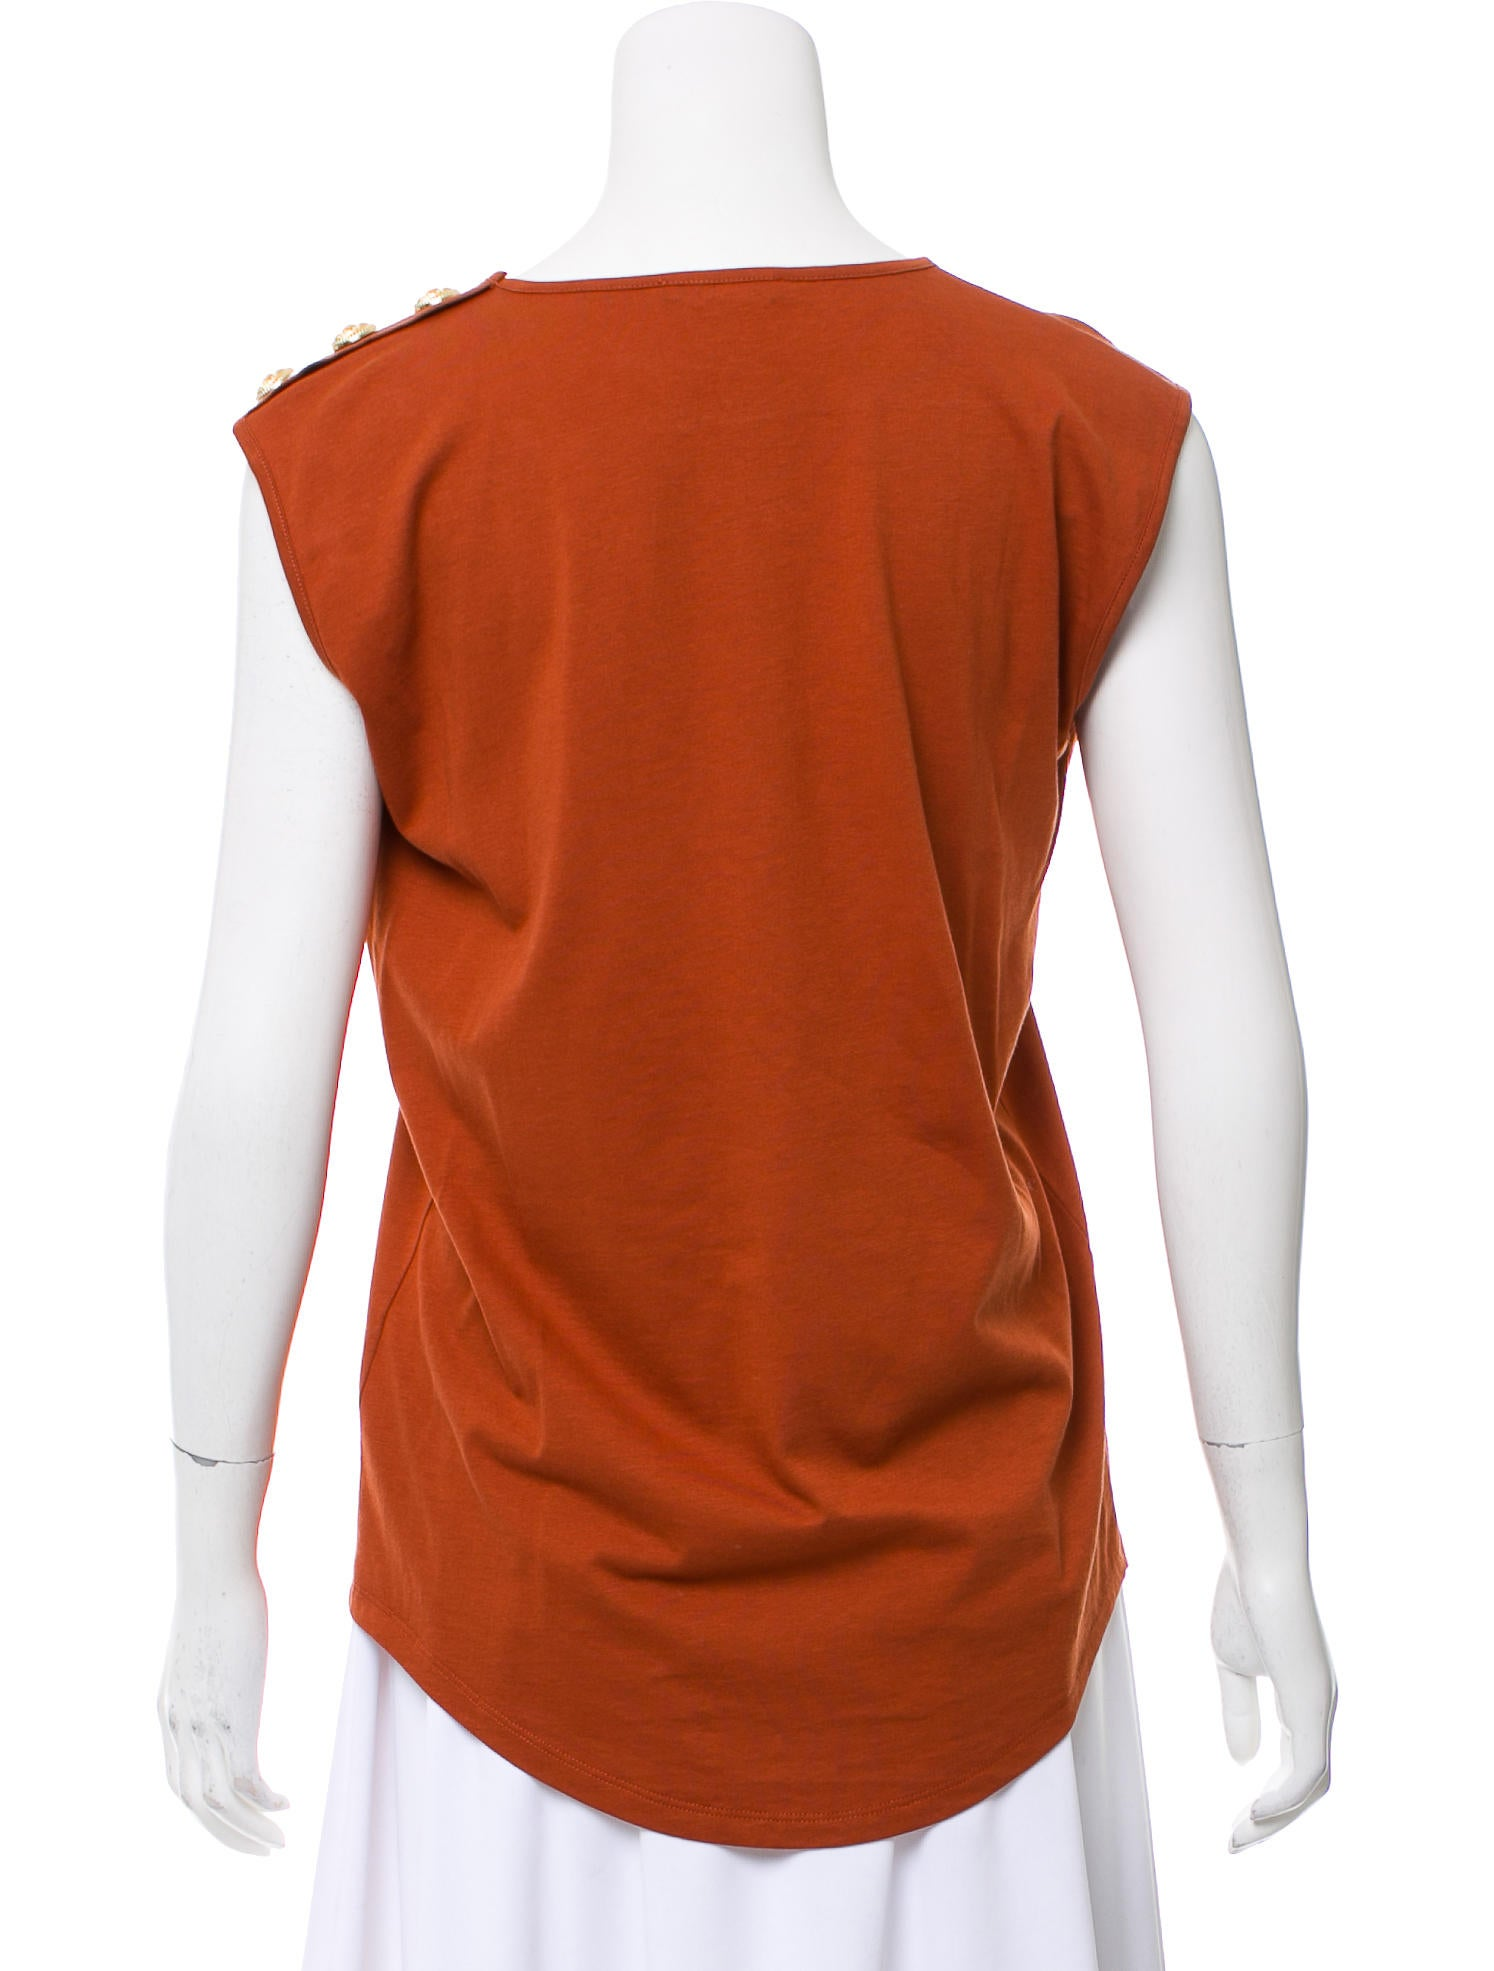 922259174c1abf Balmain Sleeveless Logo Top - Clothing - BAM27622